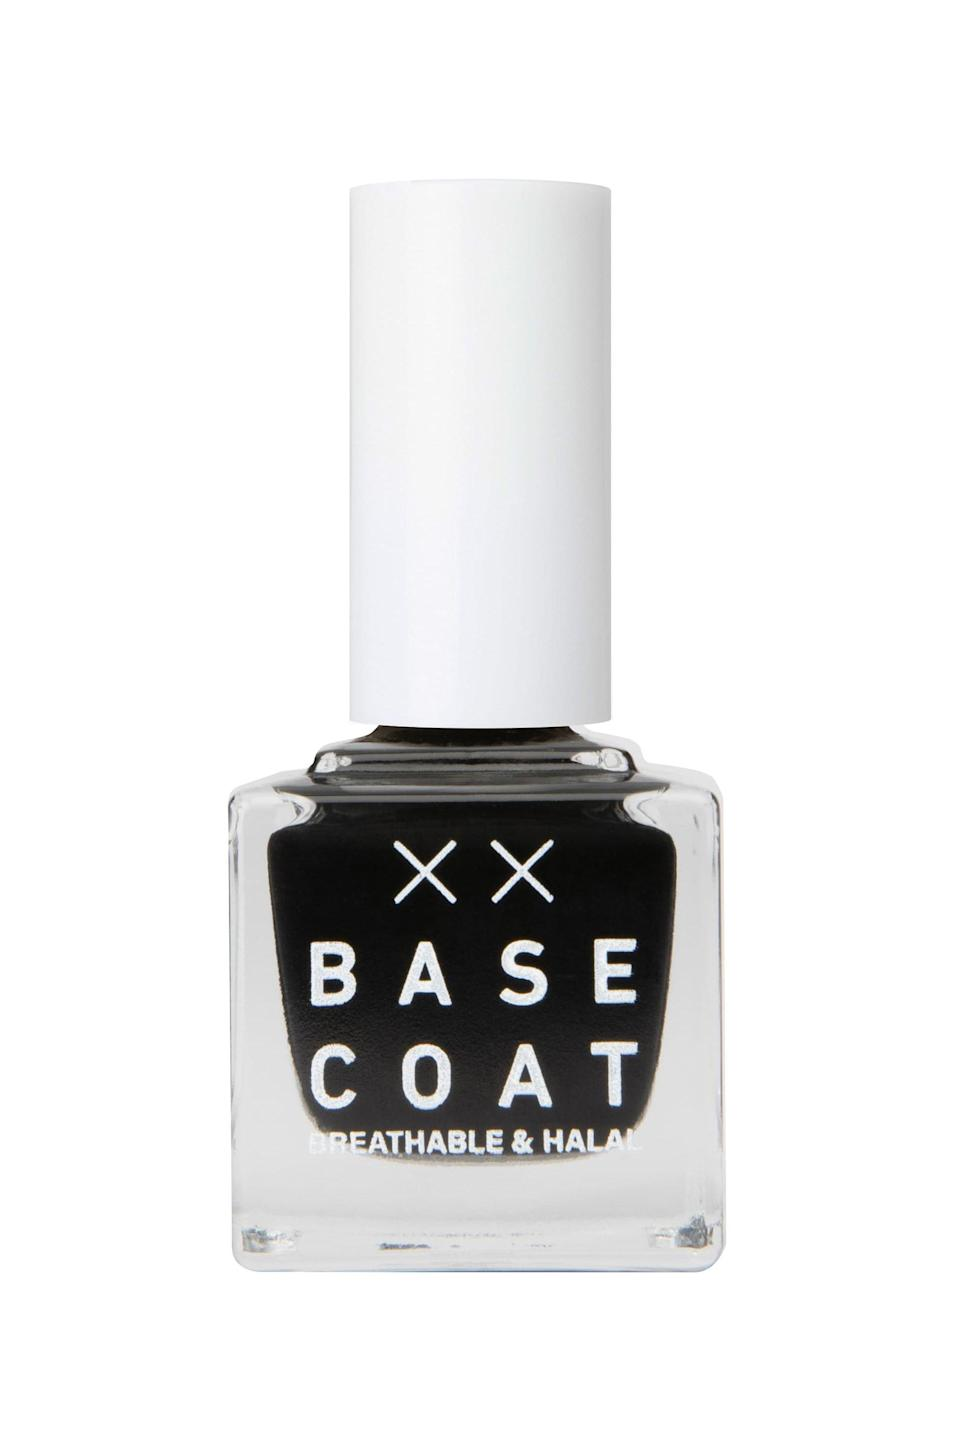 """<p><strong>Base Coat </strong></p><p>nordstrom.com</p><p><strong>$15.00</strong></p><p><a href=""""https://go.redirectingat.com?id=74968X1596630&url=https%3A%2F%2Fwww.nordstrom.com%2Fs%2Fbase-coat-breathable-halal-nail-polish%2F5436004&sref=https%3A%2F%2Fwww.marieclaire.com%2Fbeauty%2Fg3965%2Ffall-nail-colors%2F"""" rel=""""nofollow noopener"""" target=""""_blank"""" data-ylk=""""slk:SHOP IT"""" class=""""link rapid-noclick-resp"""">SHOP IT</a></p><p>If all-black-everything is your vibe, try this ultra glossy finish that will dry down in minutes. If you really want to look badass, stack a bunch of your favorite rings on to accompany this classic color. </p>"""